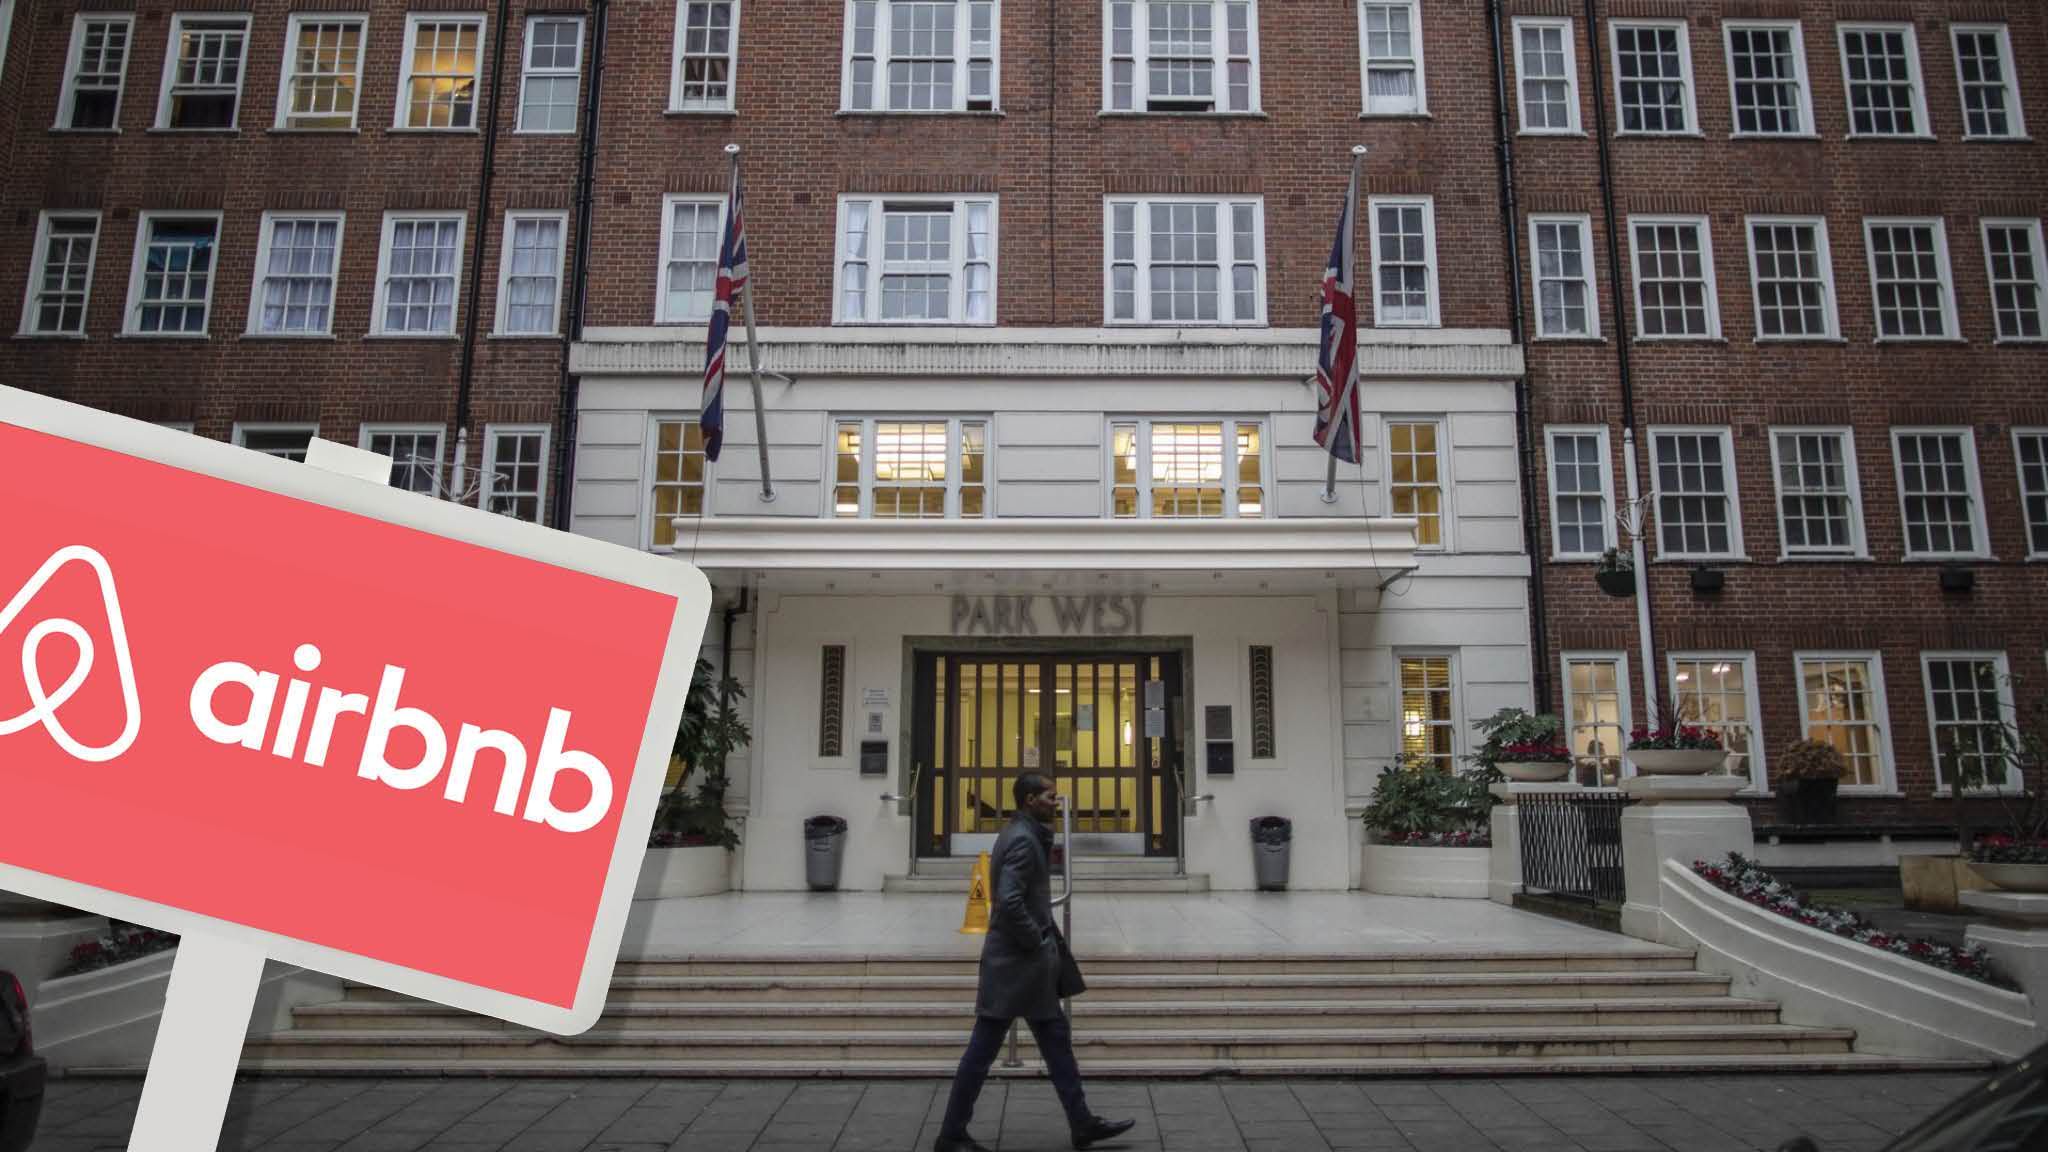 Airbnb rentals in London block sparks call for action